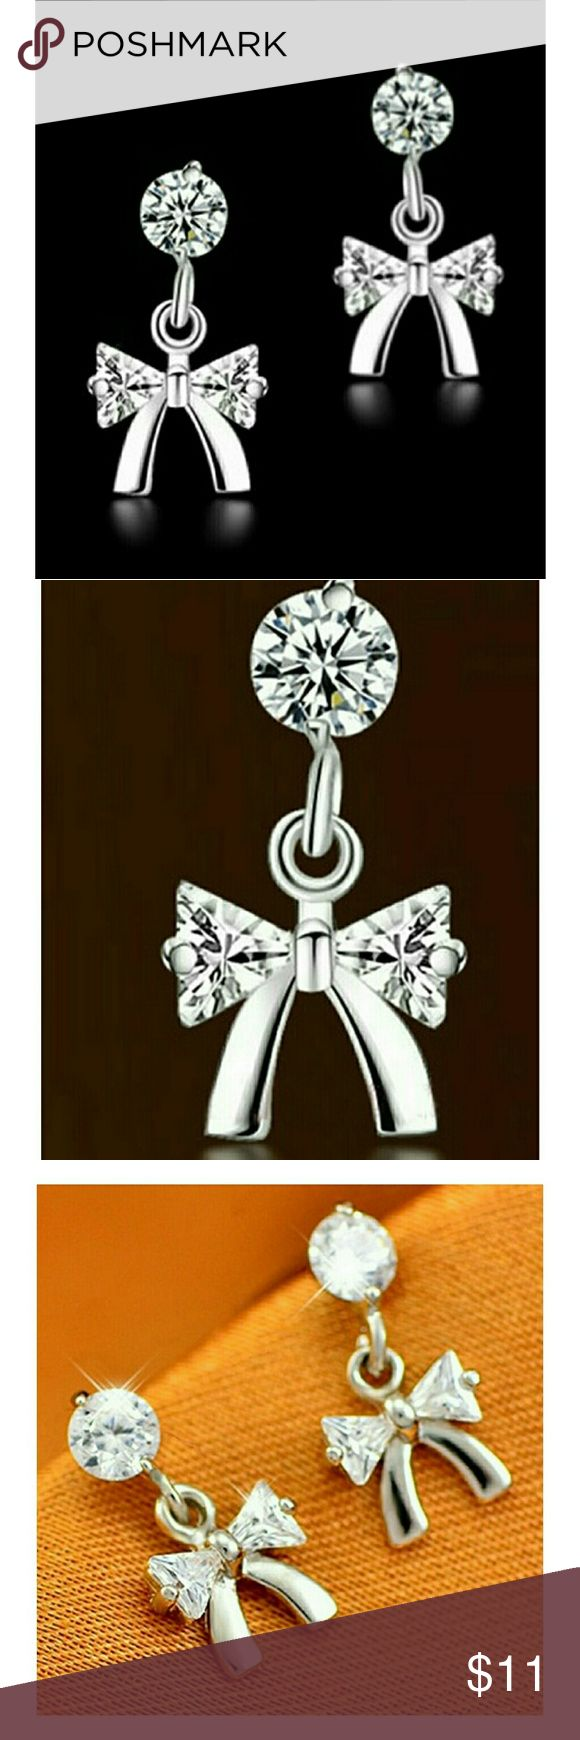 1 Pair 925 Silver & Rhinestone Bow Earrings Boutique